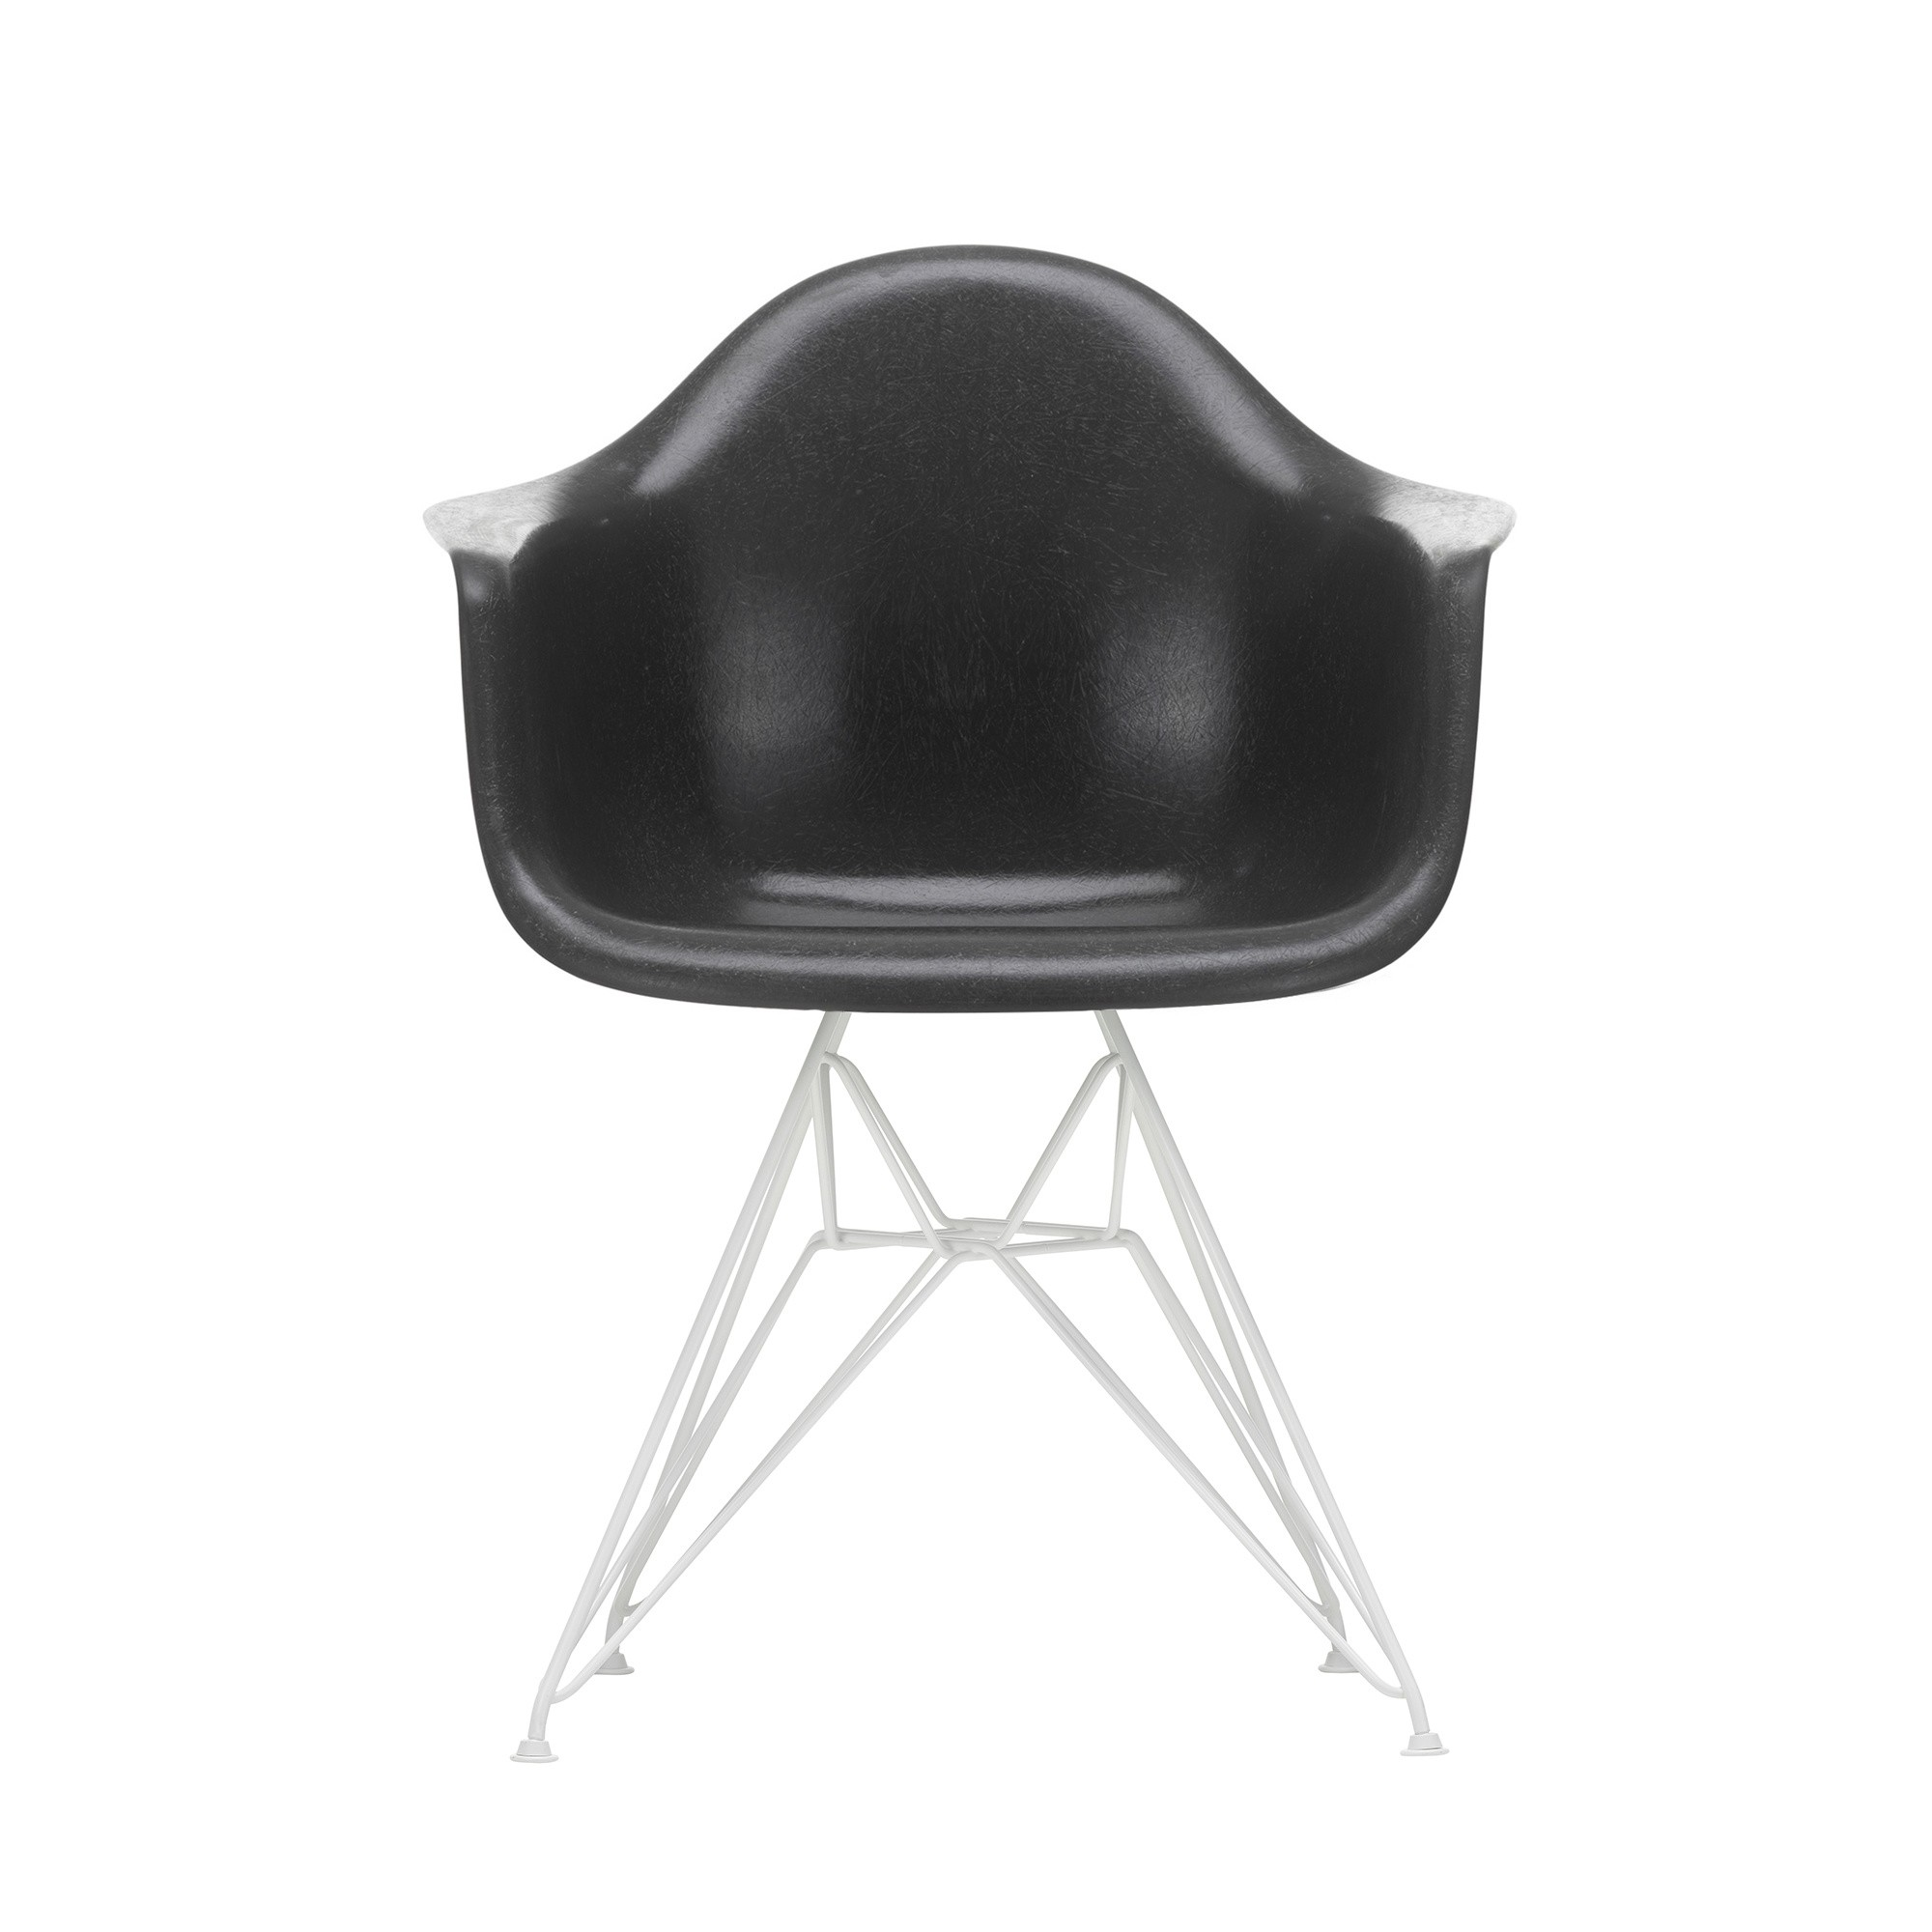 Eames Chair Weiß Vitra Eames Fiberglass Armchair Dar White Base | Ambientedirect